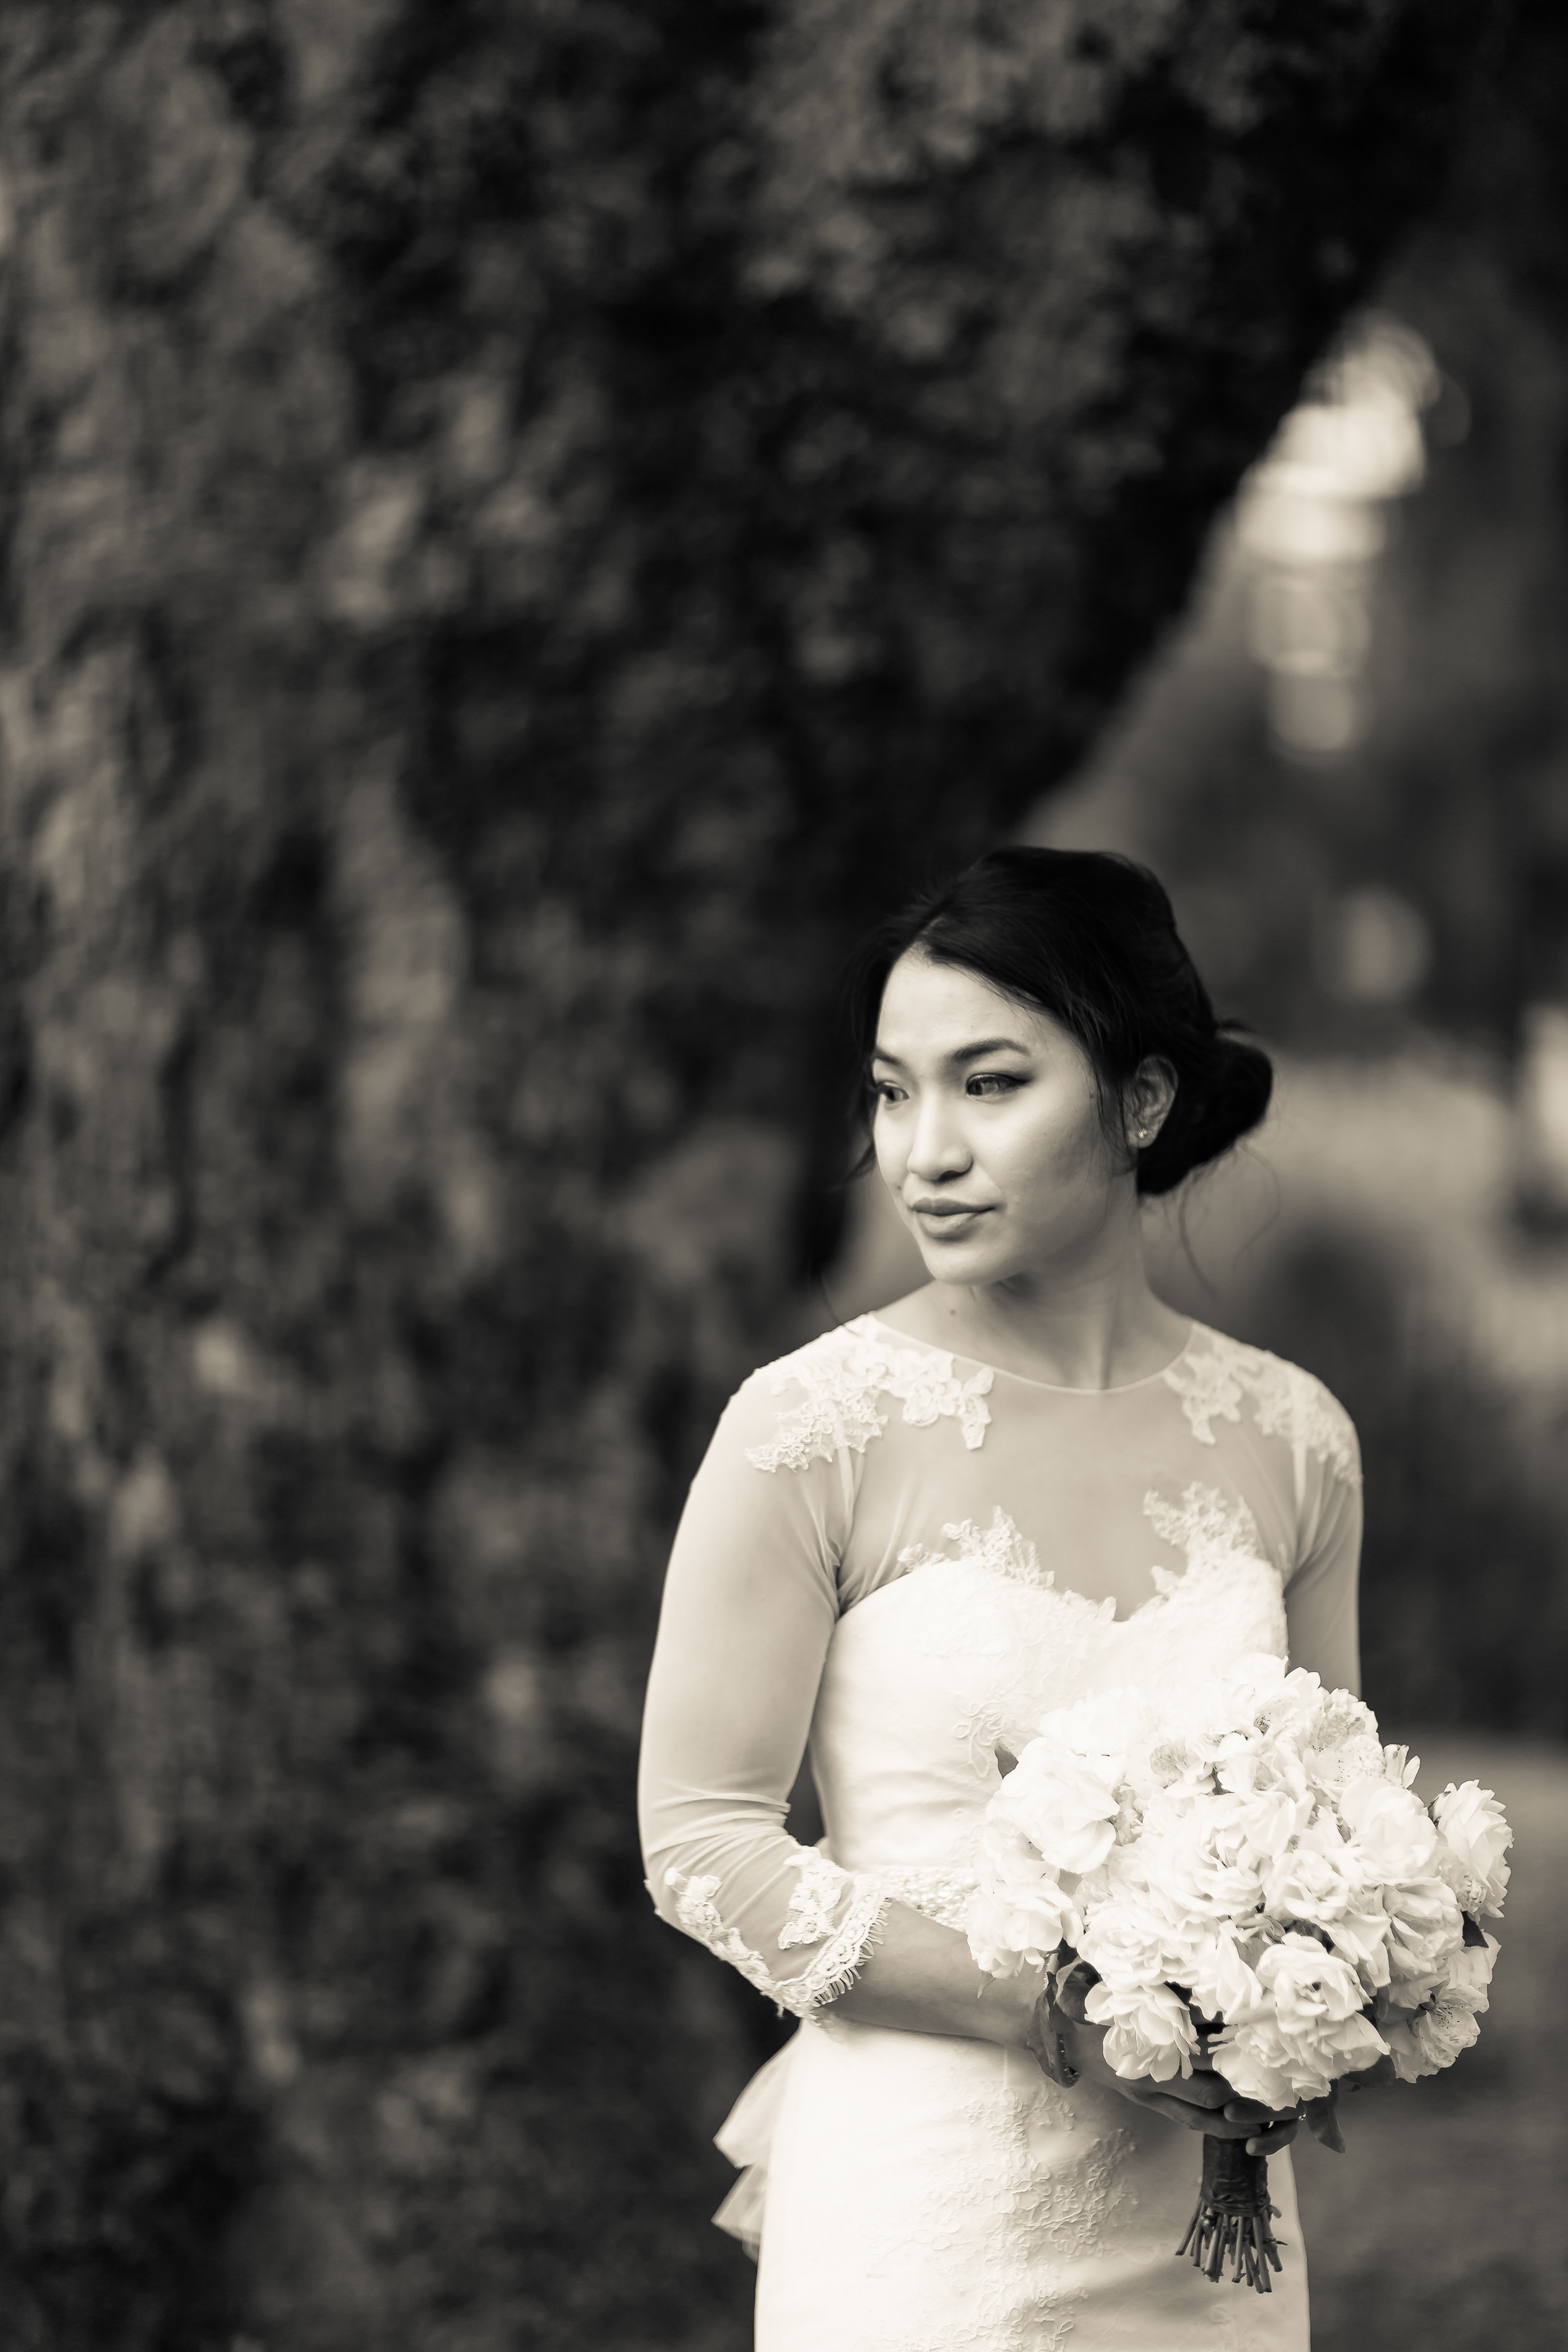 Toshi Tazawa Photography - San Francisco Destination Wedding Photographer-8a.jpg